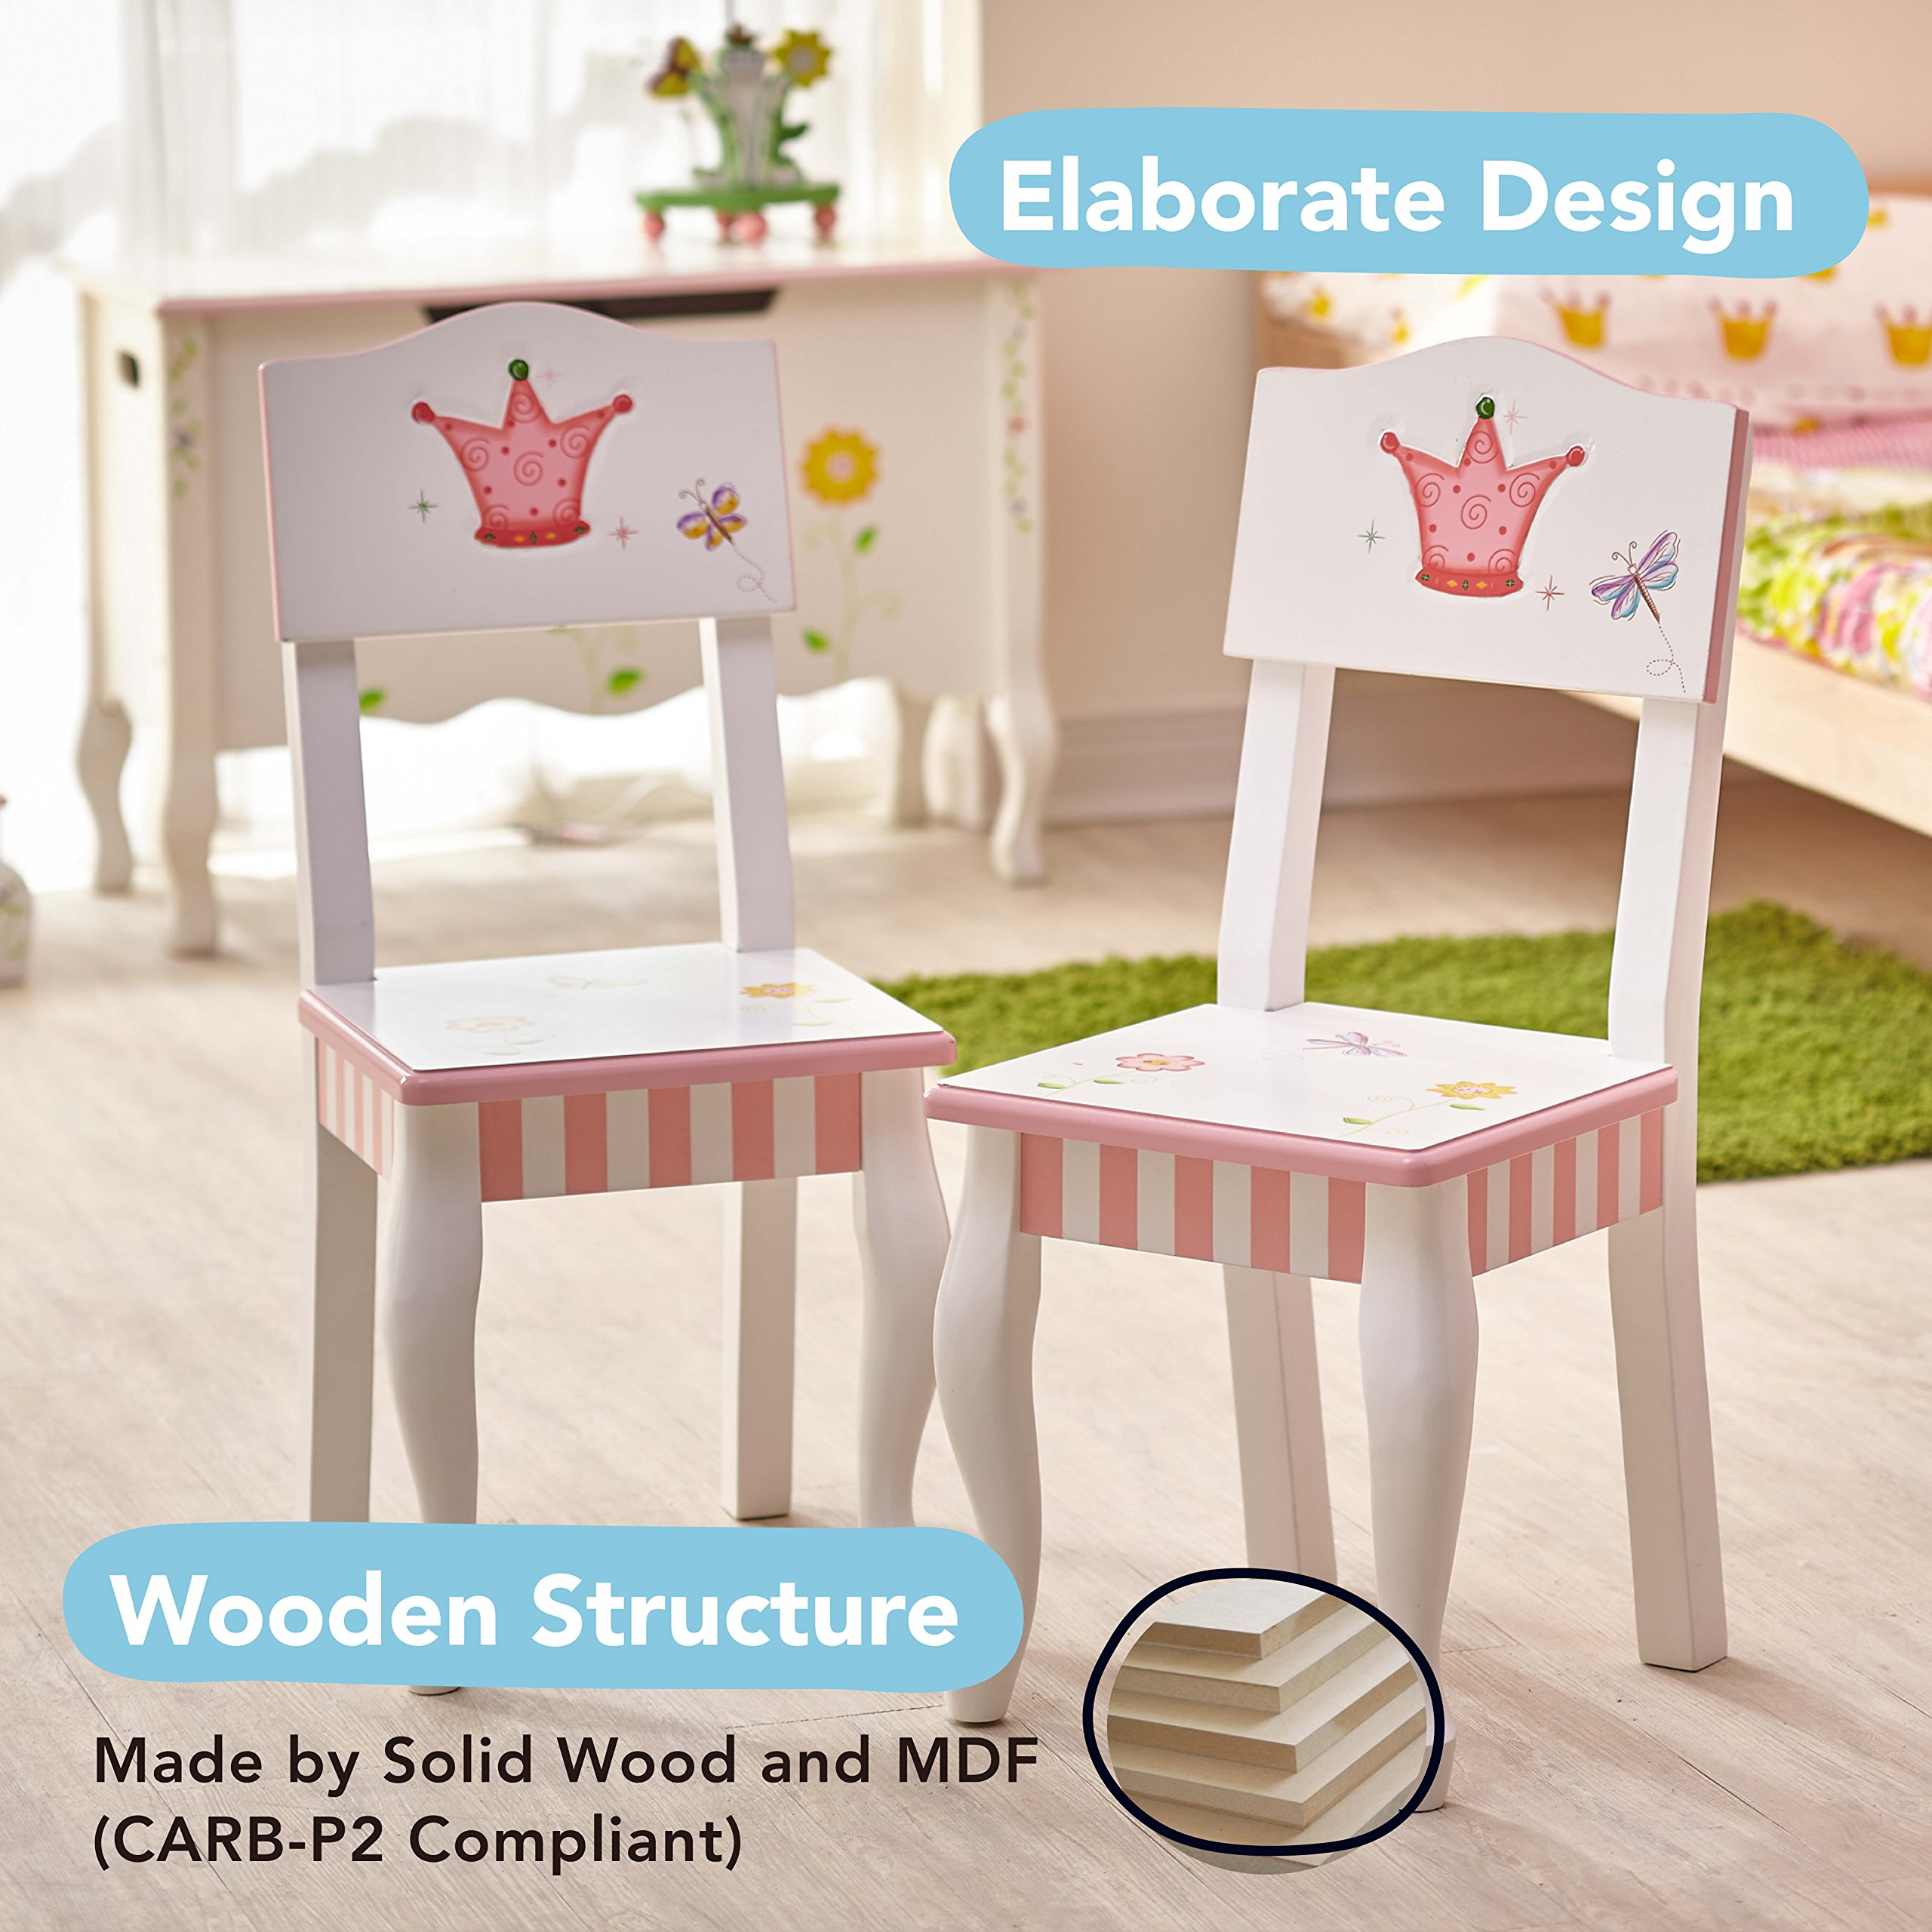 Fantasy Fields - Princess & Frog Thematic Hand Crafted Kids Wooden Table and 2 Chairs Set  Imagination Inspiring Hand Crafted & Hand Painted Details   Non-Toxic, Lead Free Water-based Paint by Fantasy Fields (Image #4)